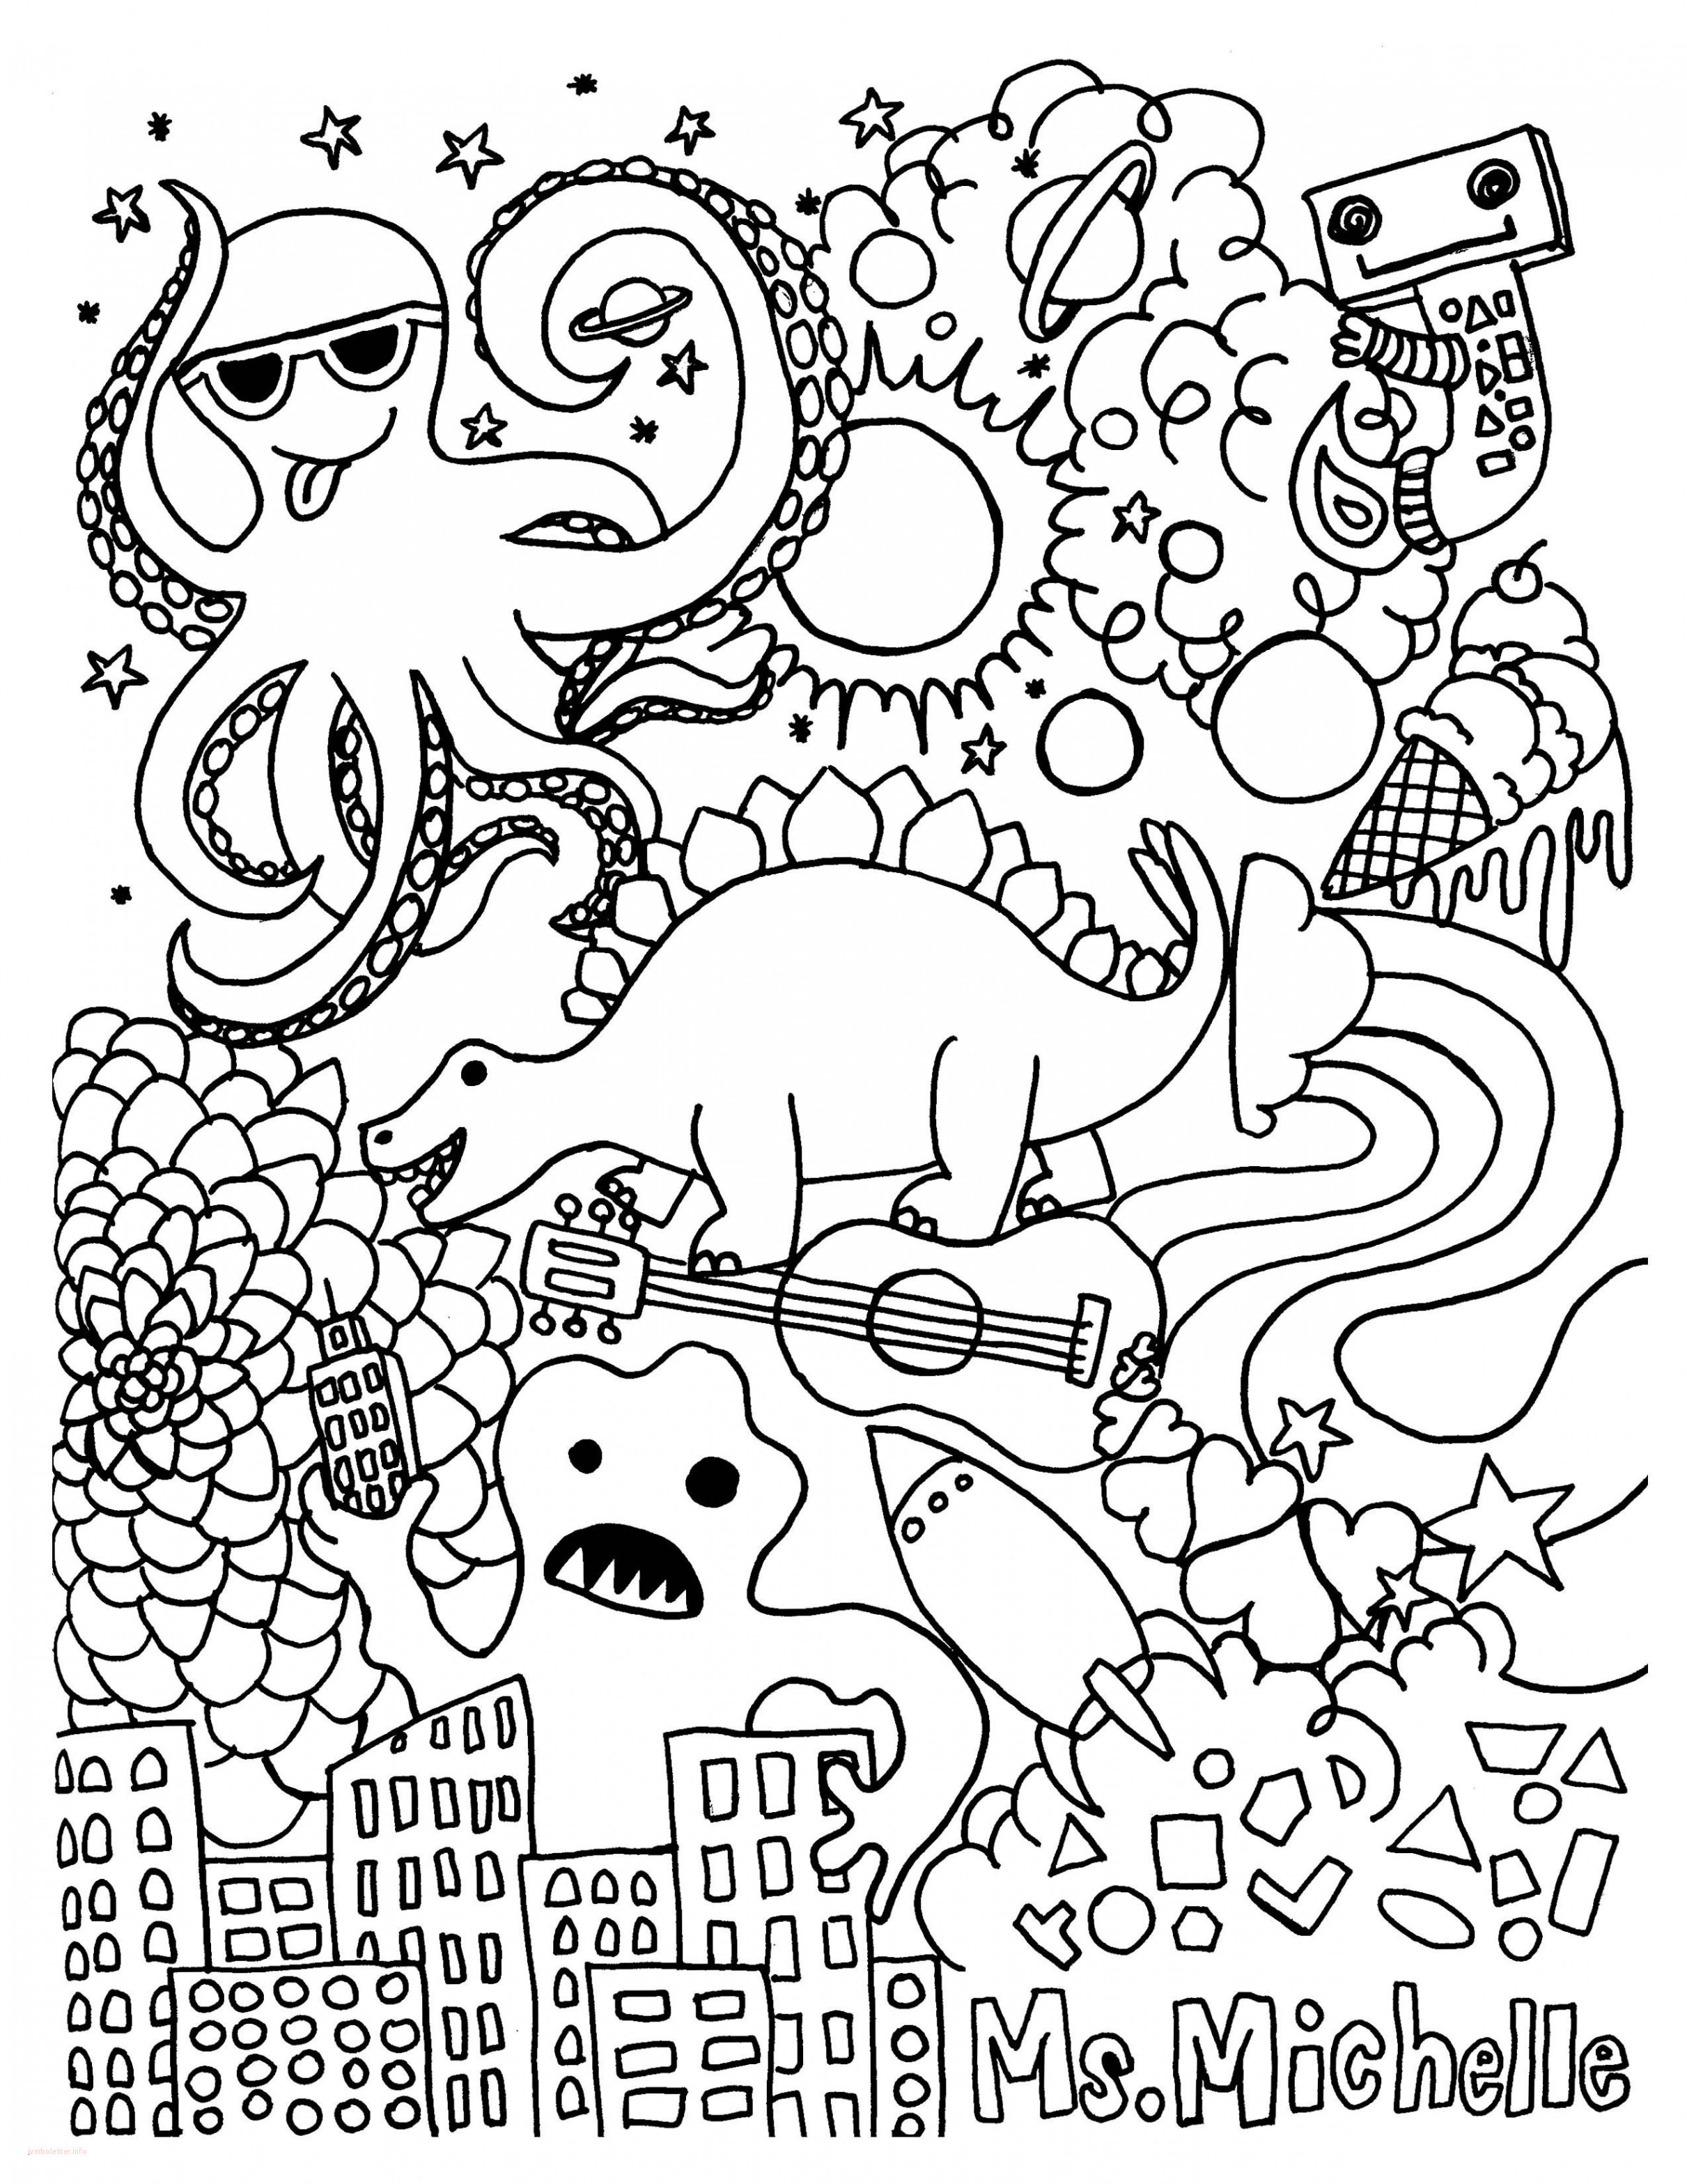 Garden Of Eden Coloring Pages  Printable 7p - Save it to your computer